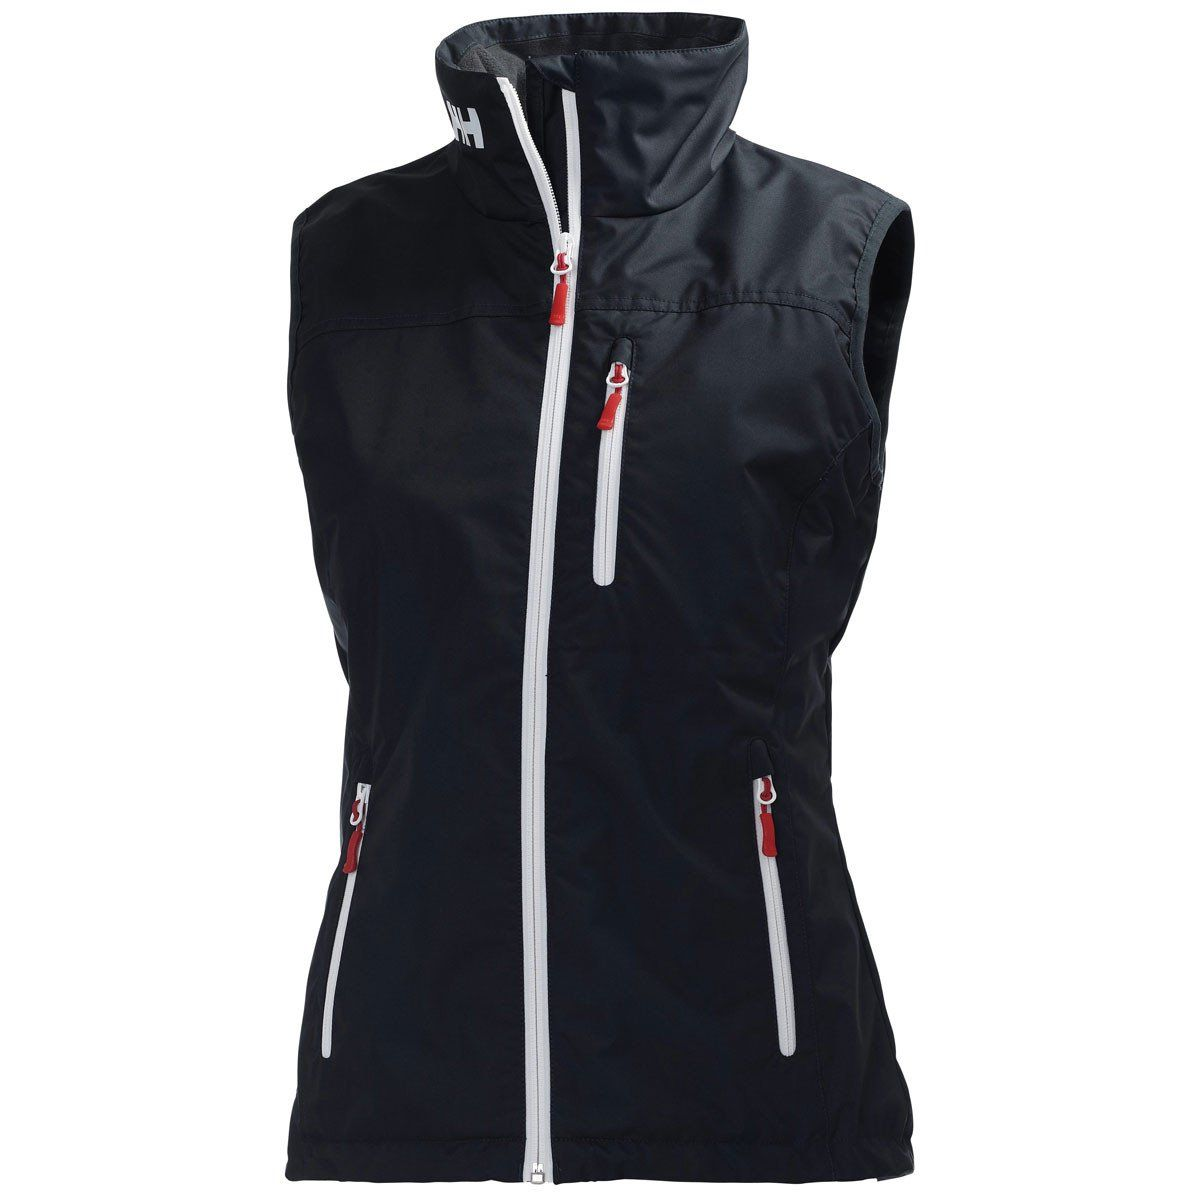 Photo of Gilet girocollo blu scuro da donna di Helly Hansen